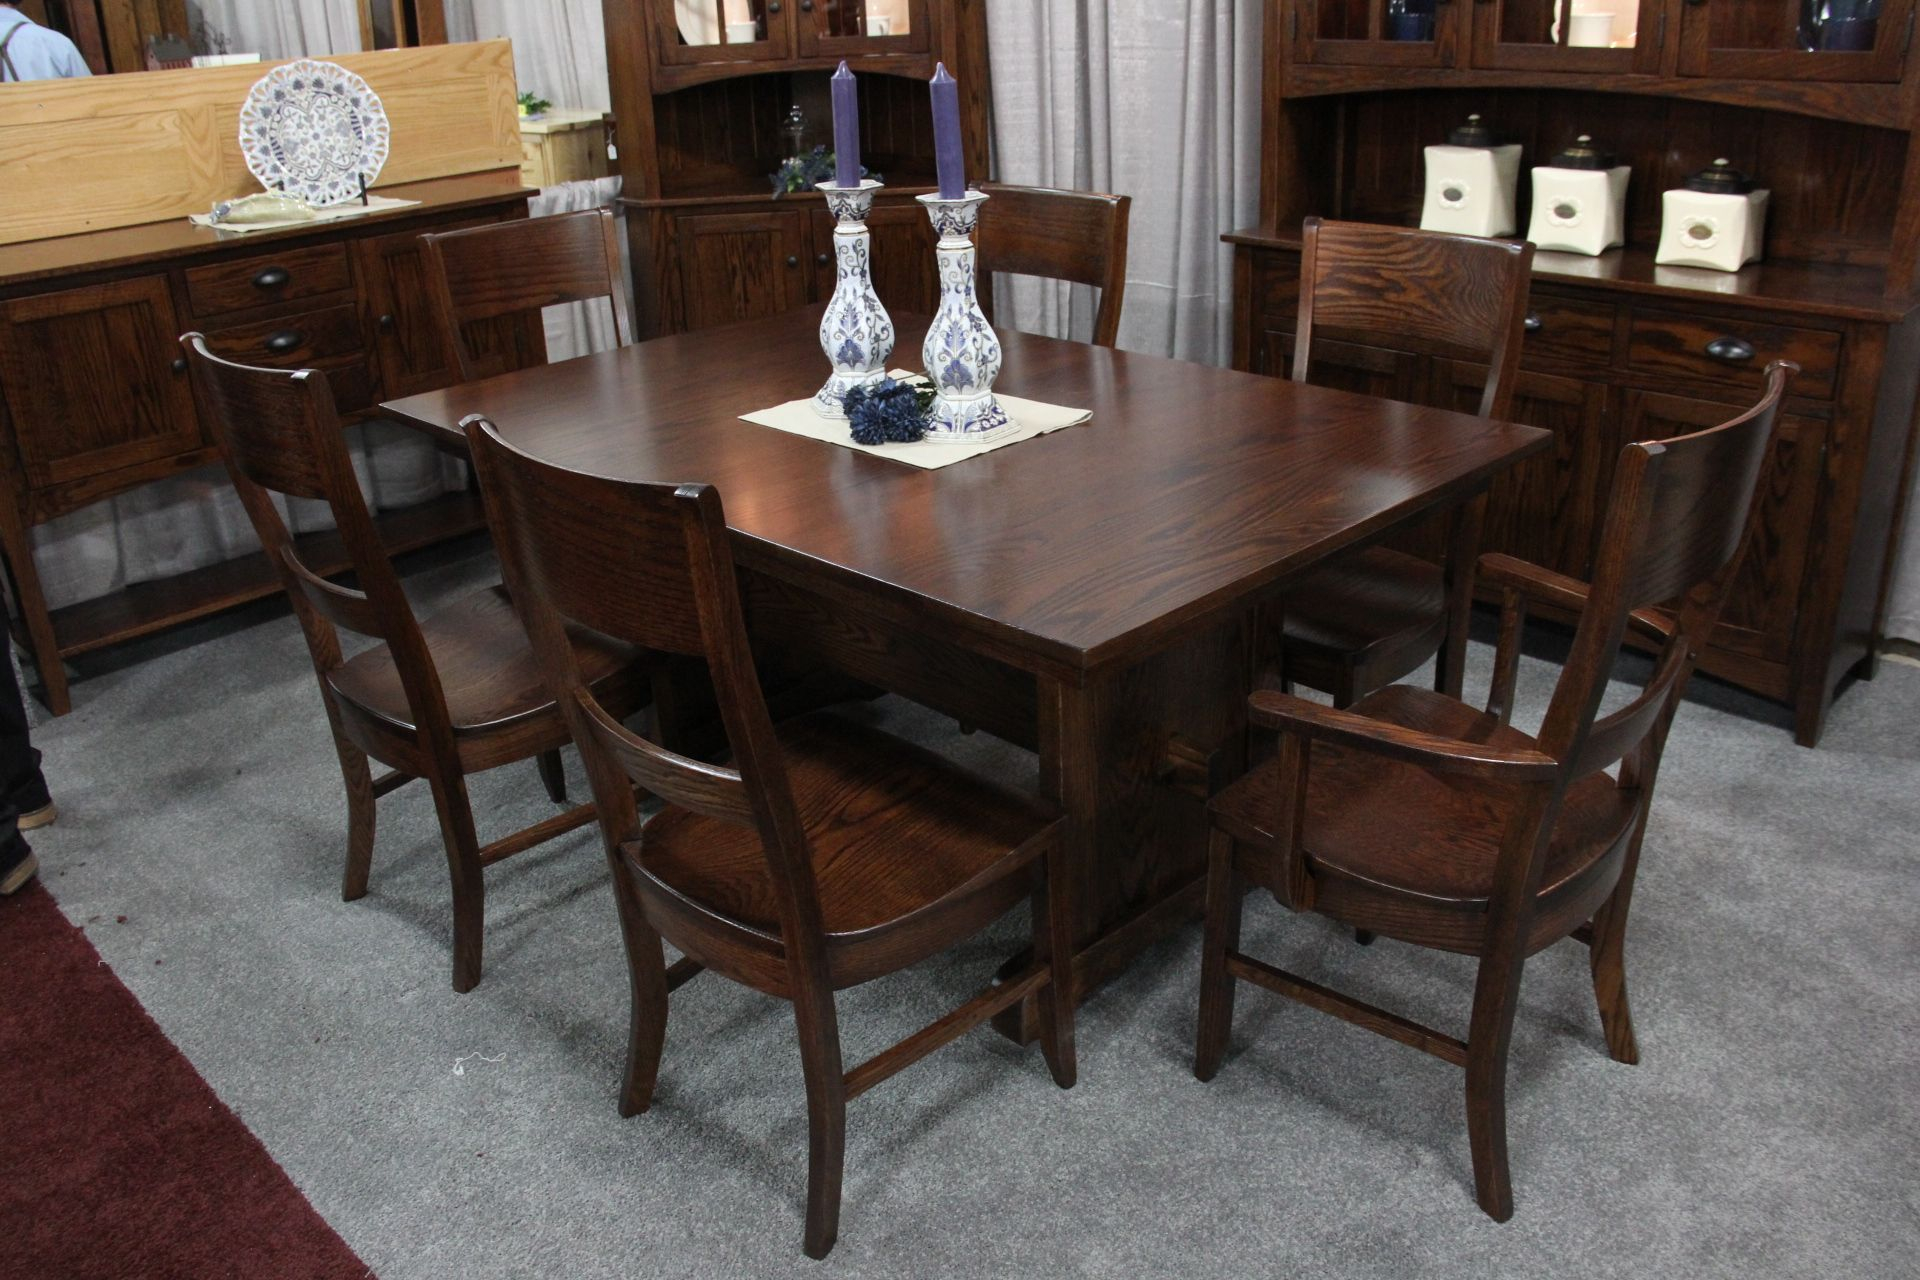 American made dining room furniture gorgeous dining room table and chair set american made - American made dining room furniture ...